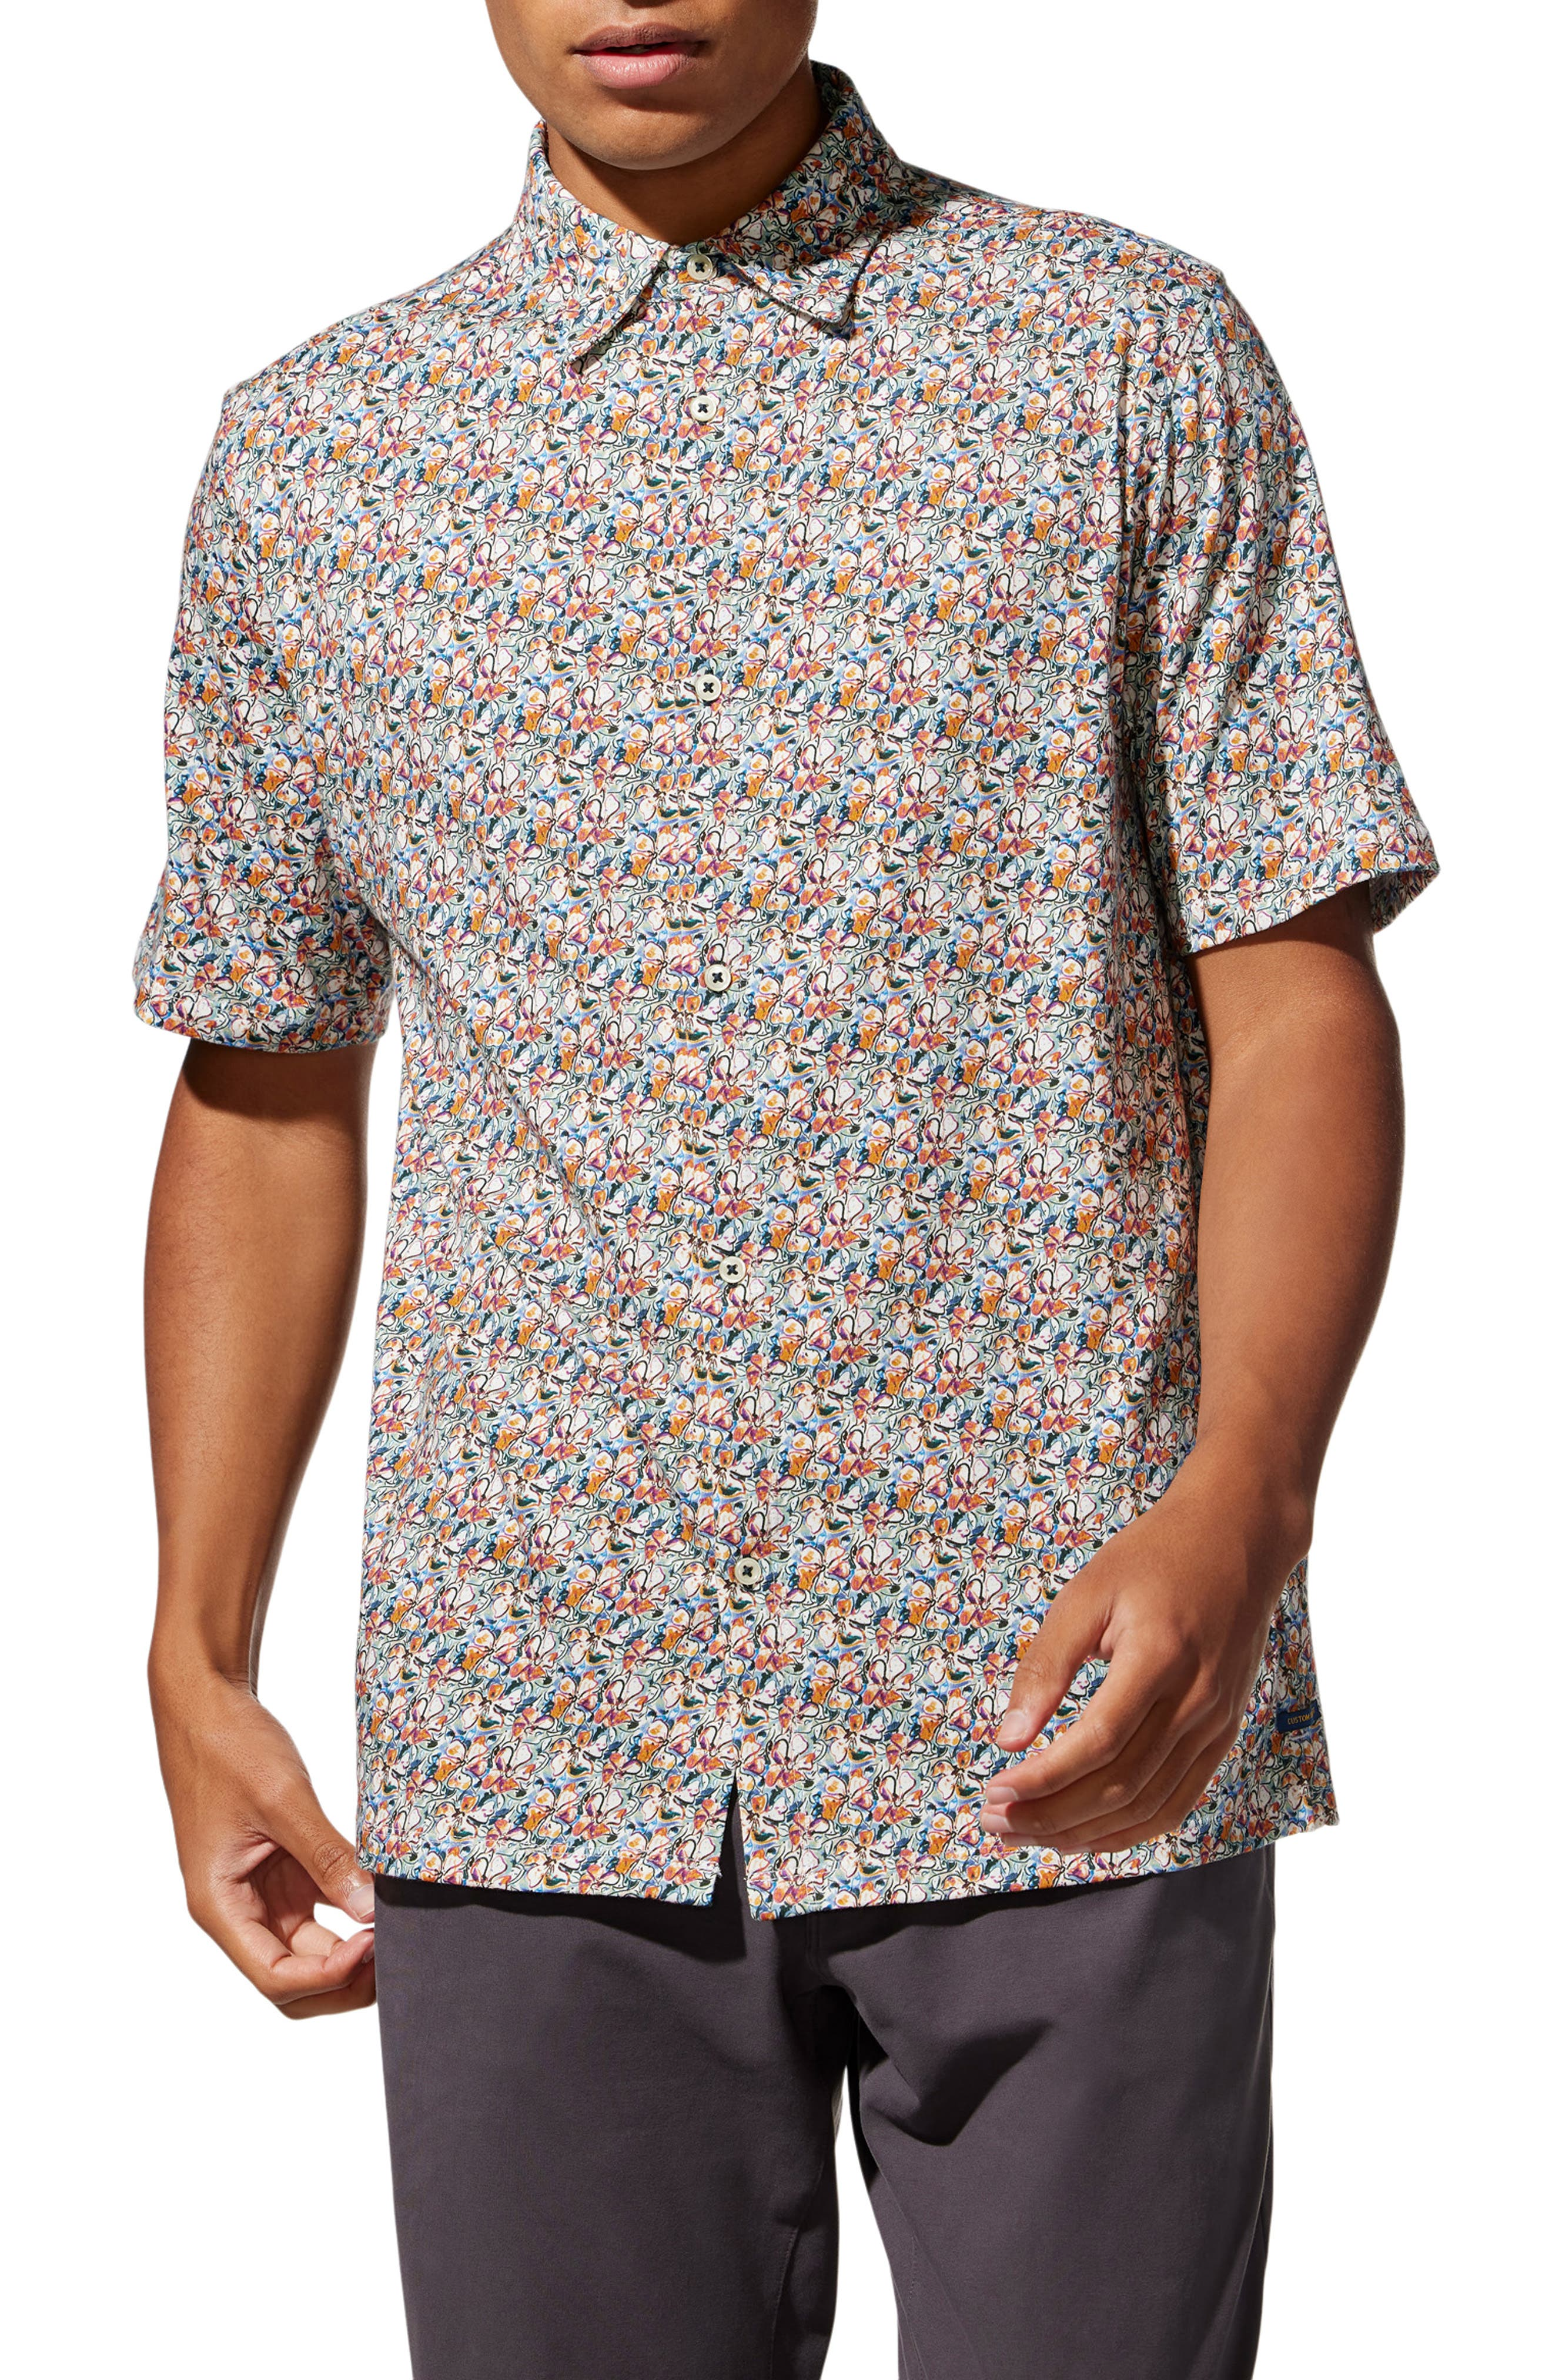 Big On-Point Slim Fit Floral Short Sleeve Stretch Button-Up Shirt